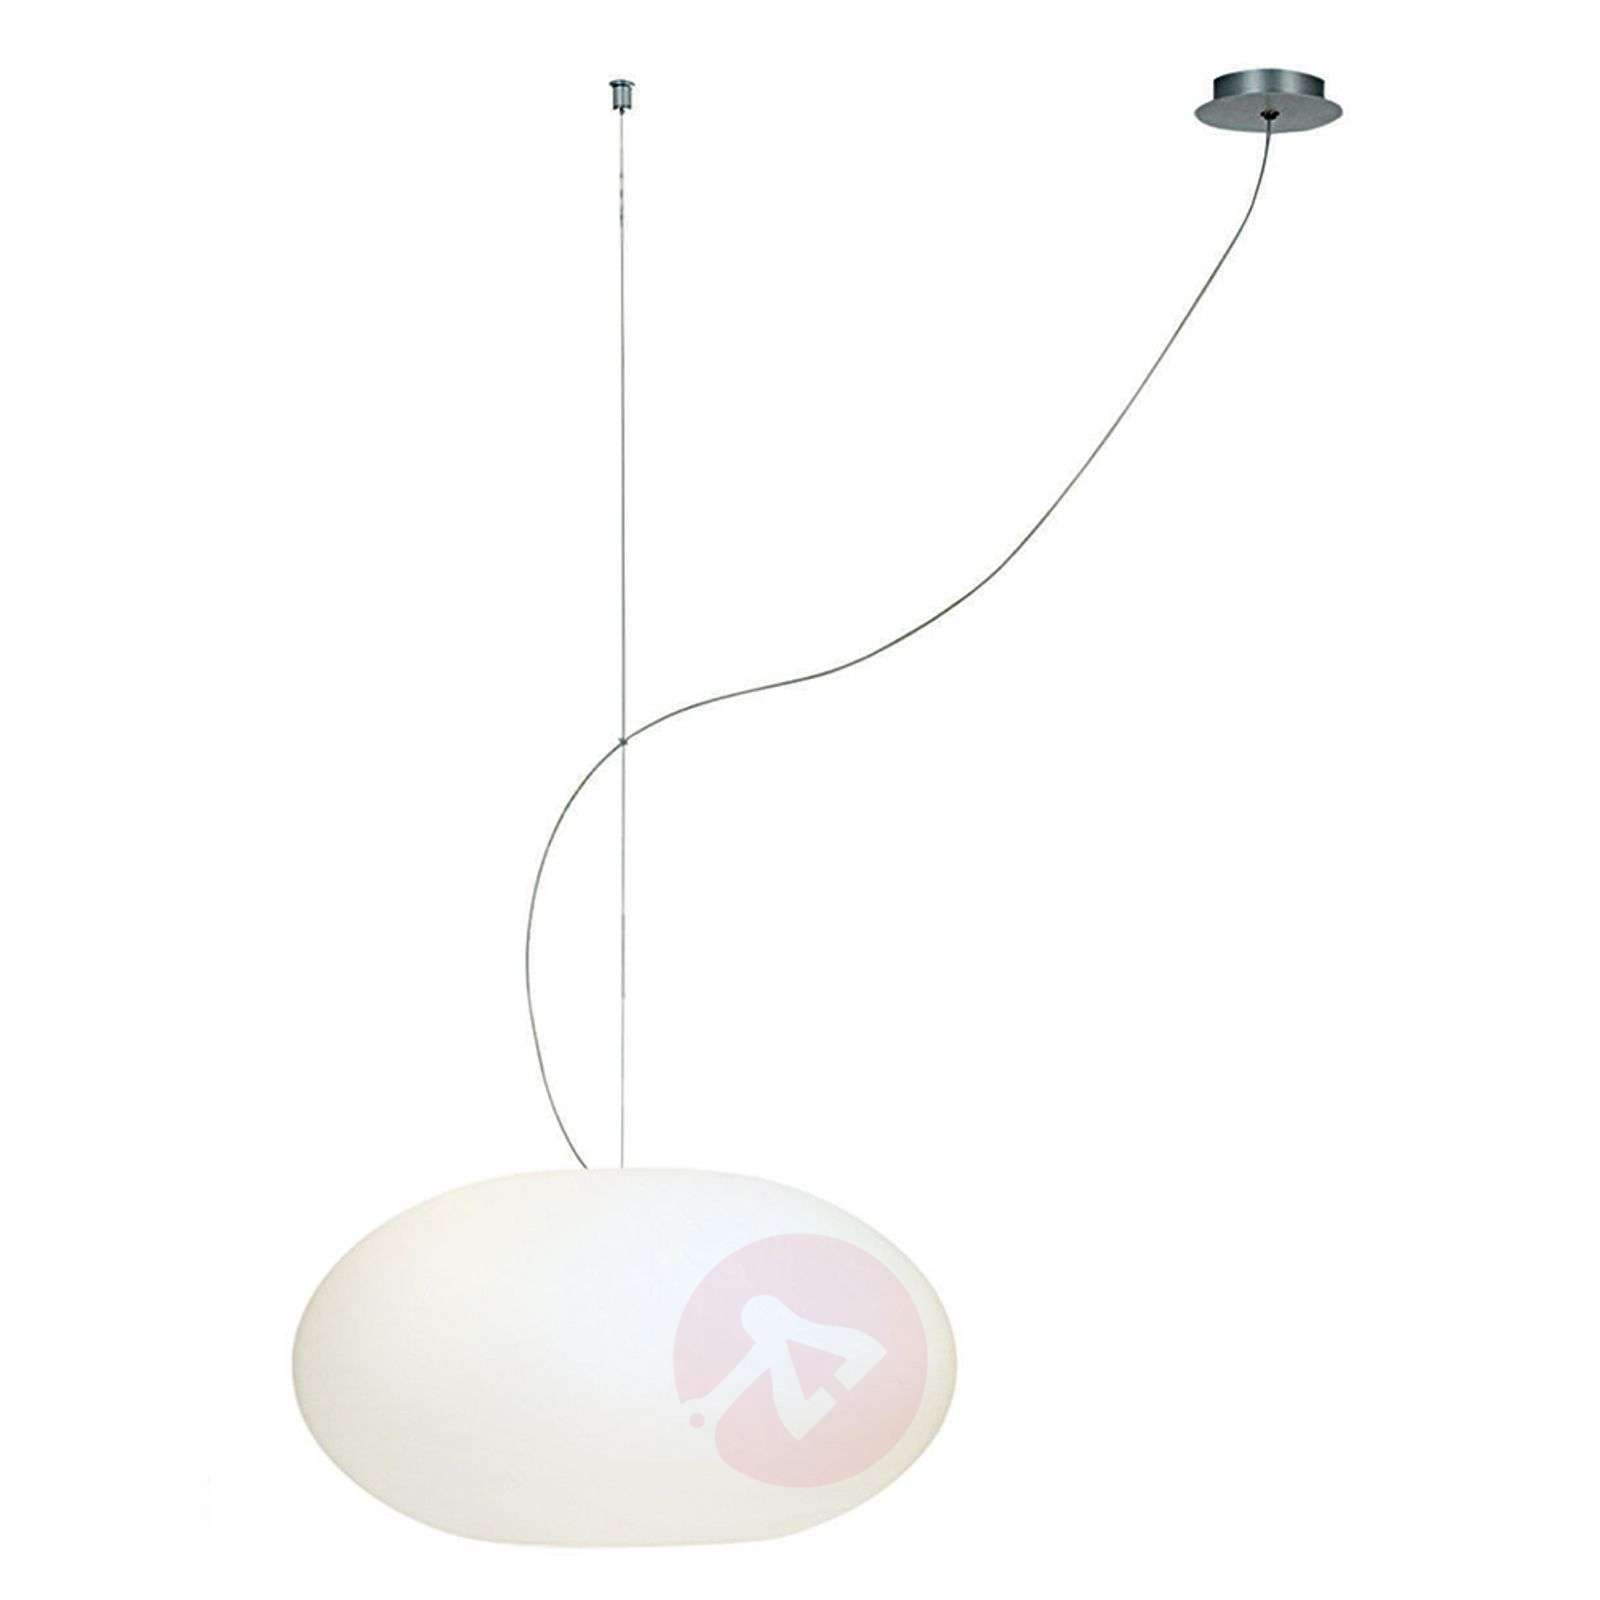 Suspension verre Aih 38 cm blanche brillante-2000228-01